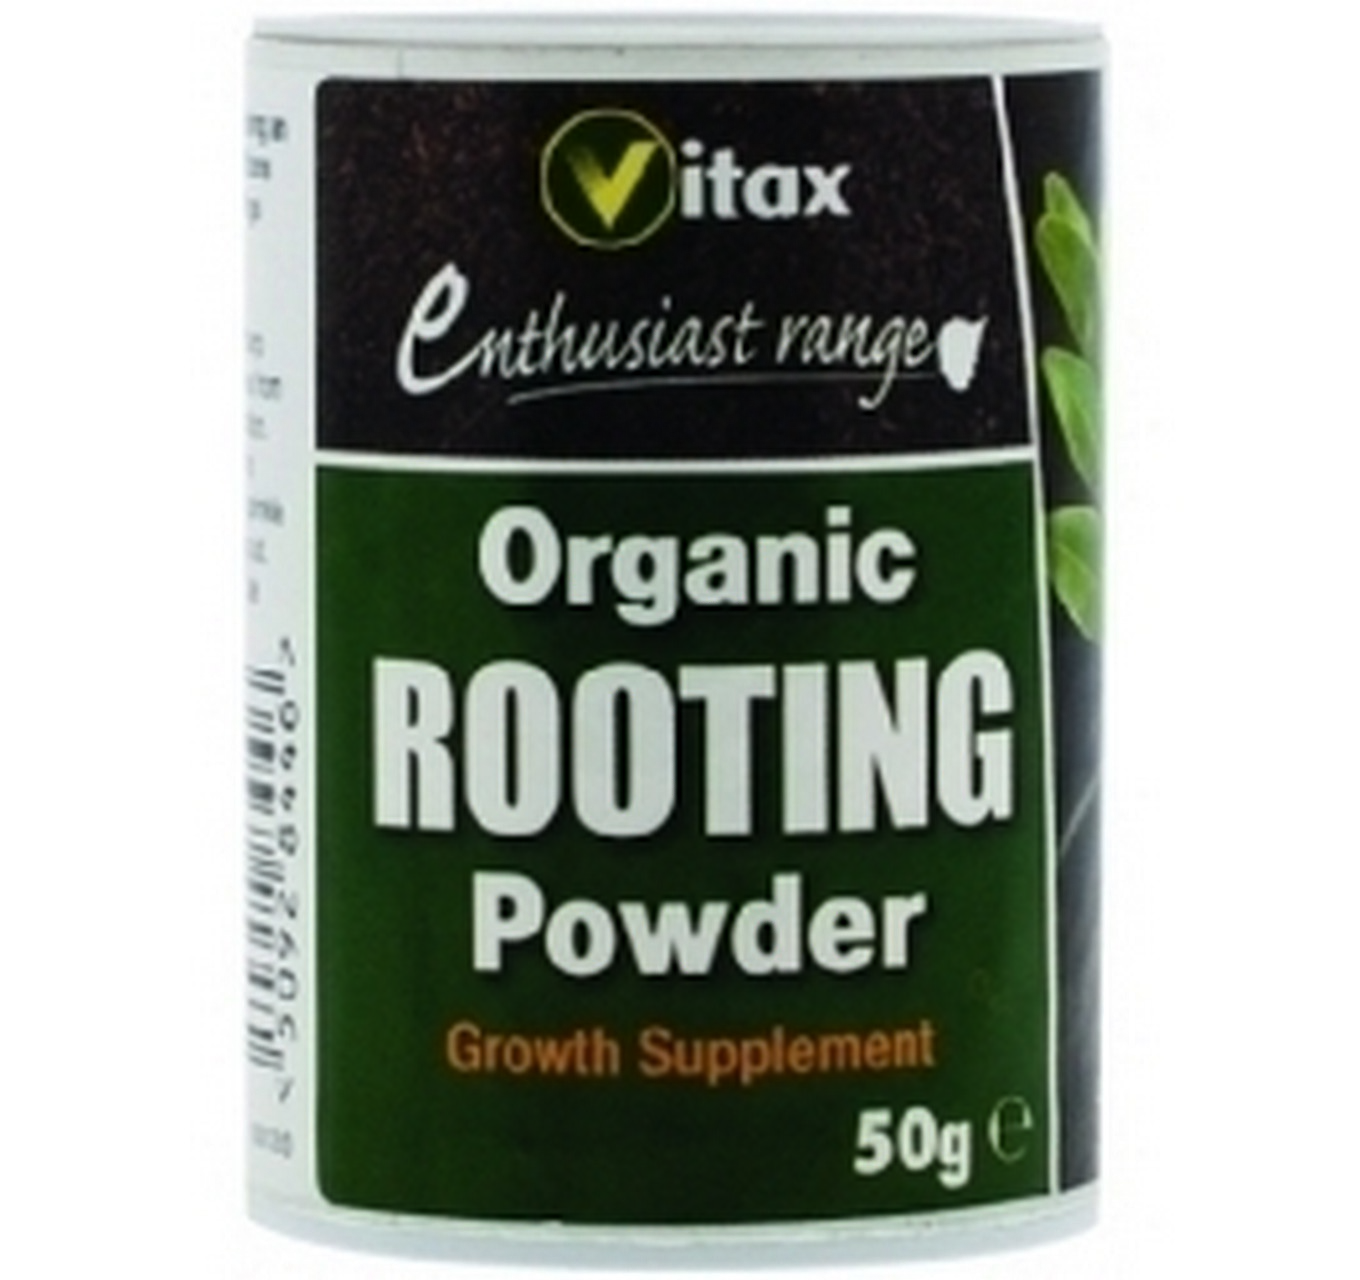 Organic Rooting Powder 50g